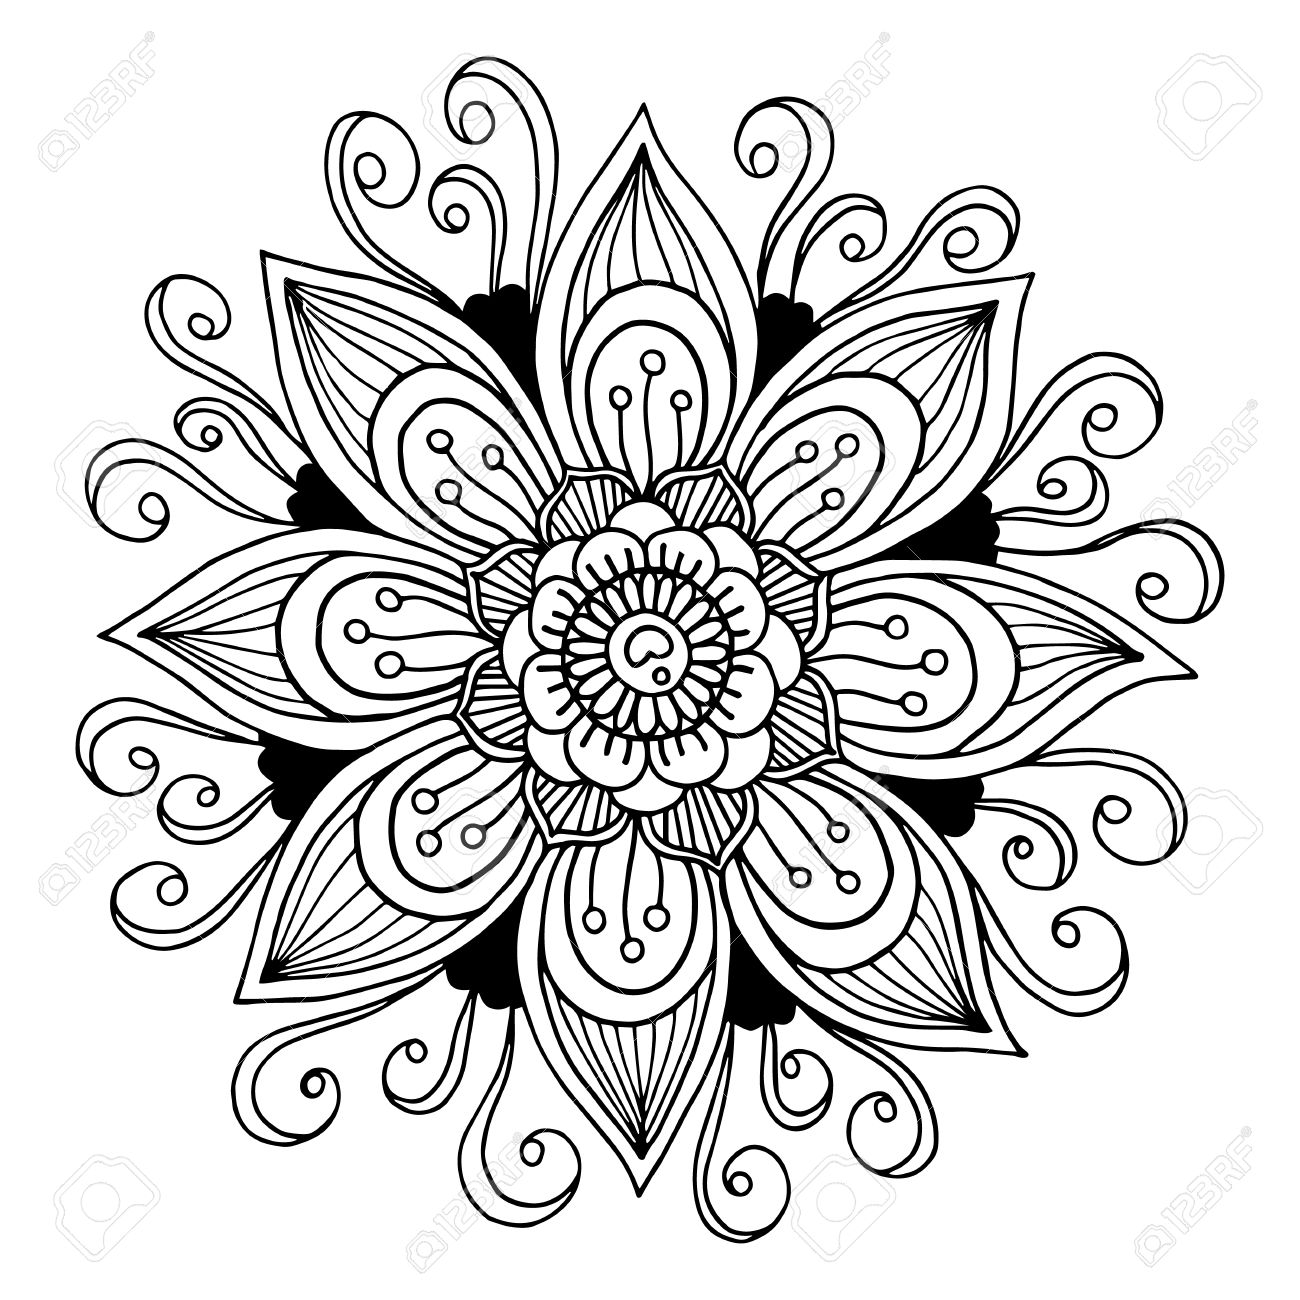 Black and white flower drawing free download best black and white 1300x1300 drawn floral black and white mightylinksfo